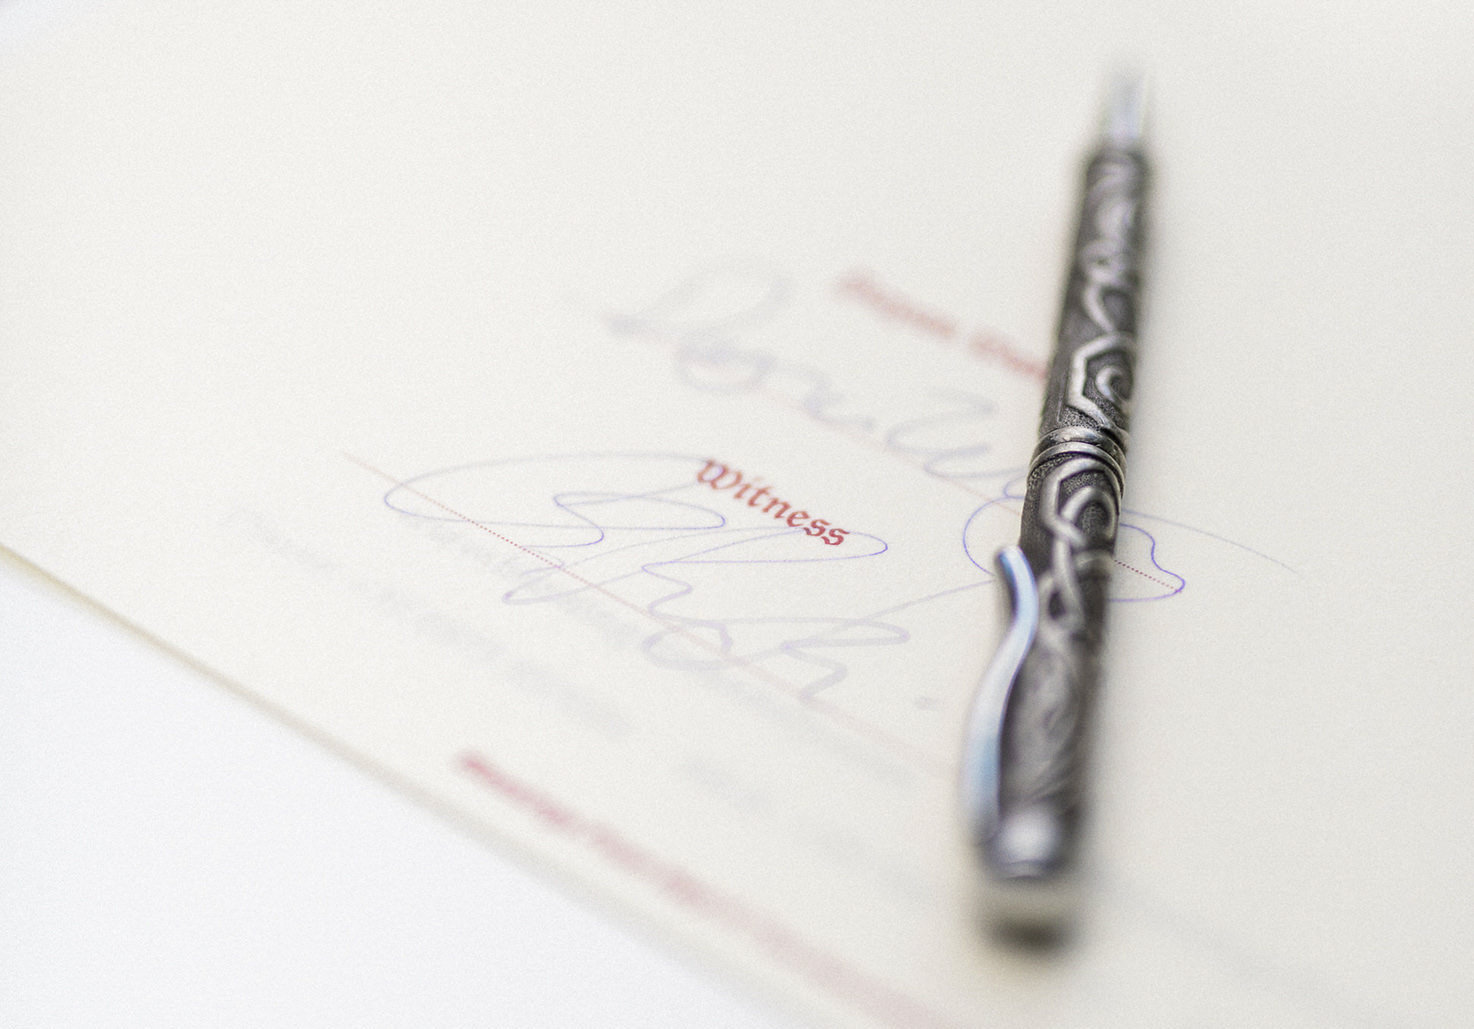 Signing of legal documents for wedding in Italy